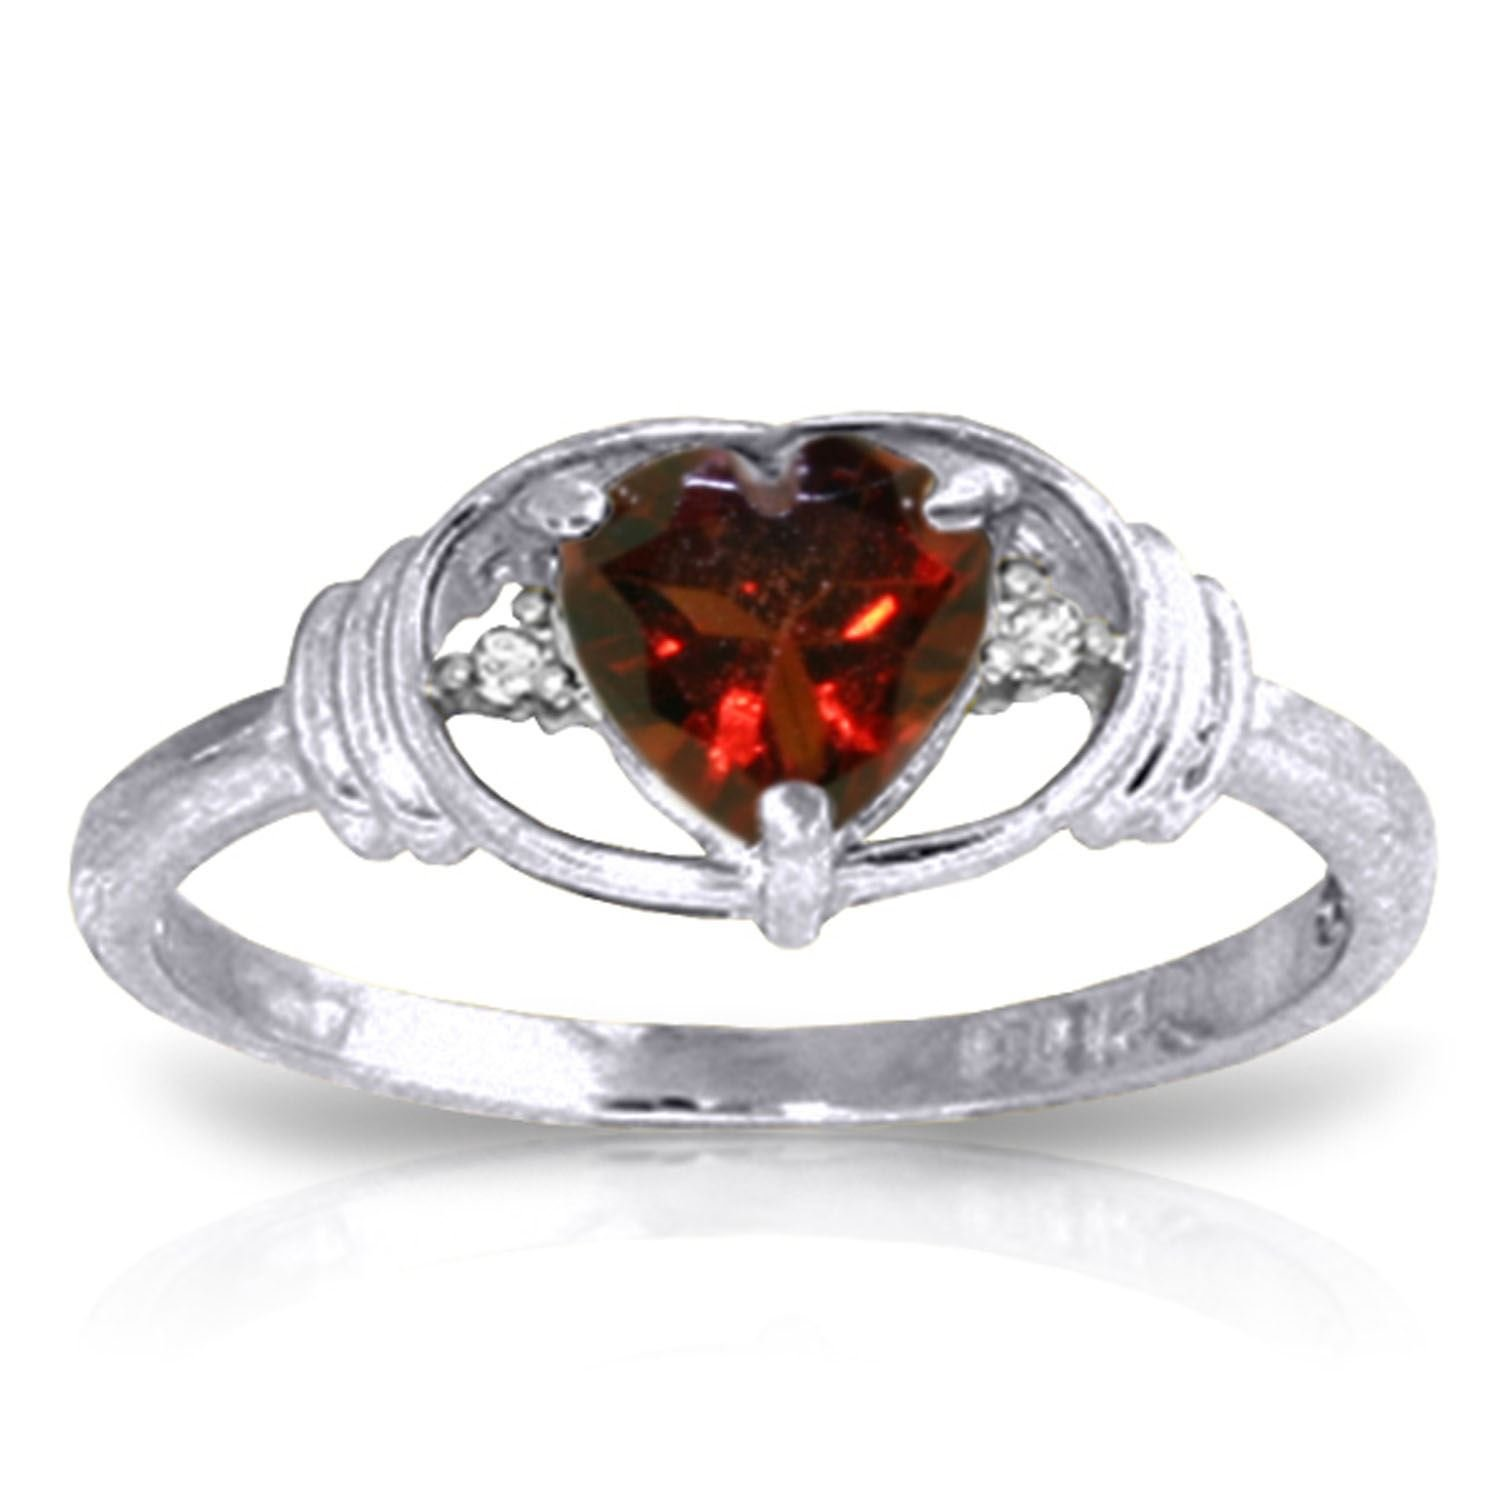 ALARRI 0.96 CTW 14K Solid White Gold Love So High Garnet Diamond Ring With Ring Size 5